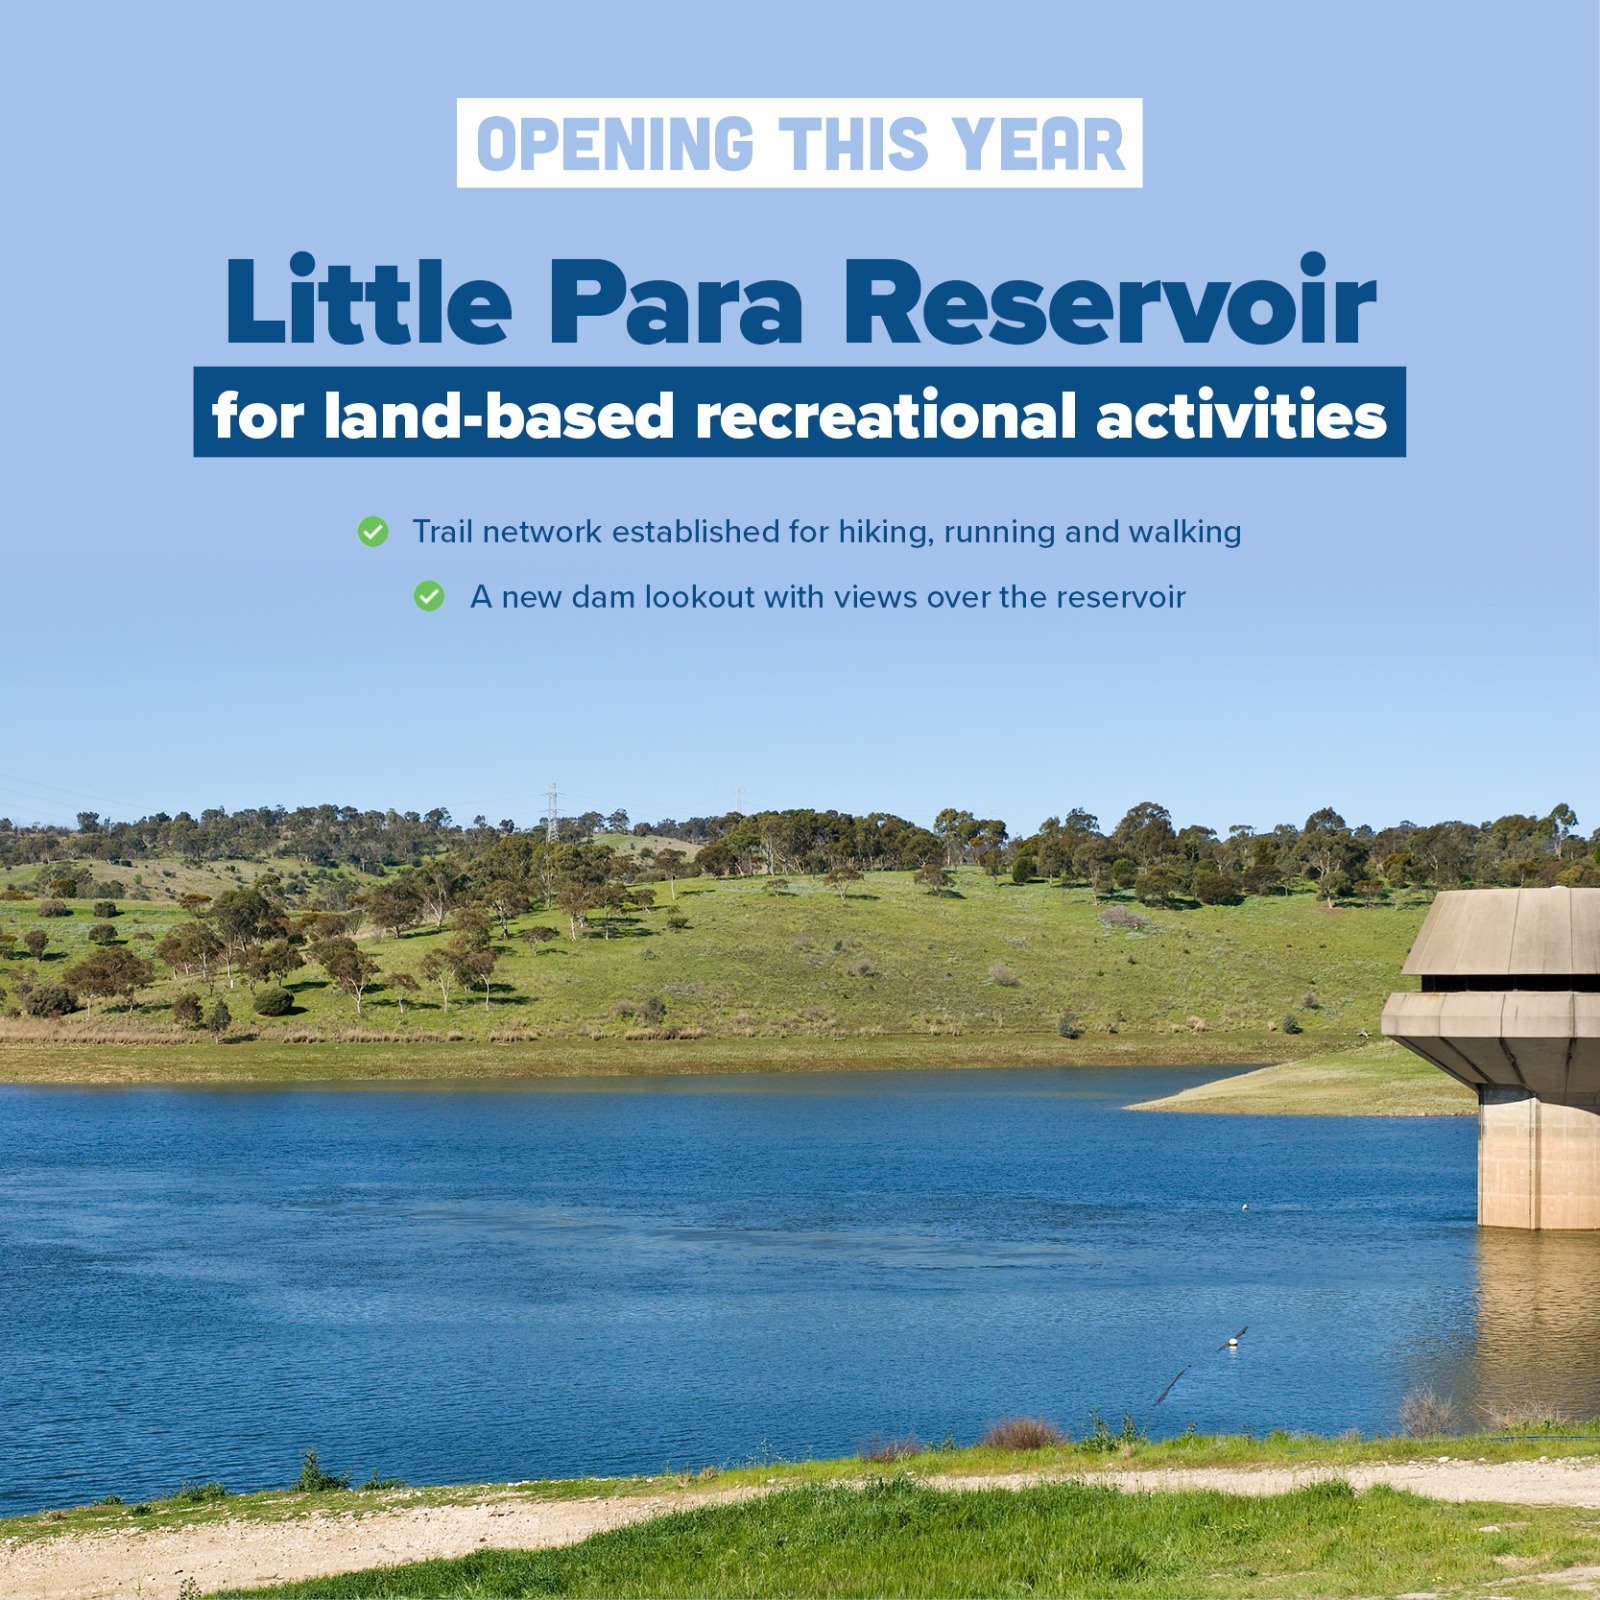 Little Para Reservoir - Opening up our Reservoirs